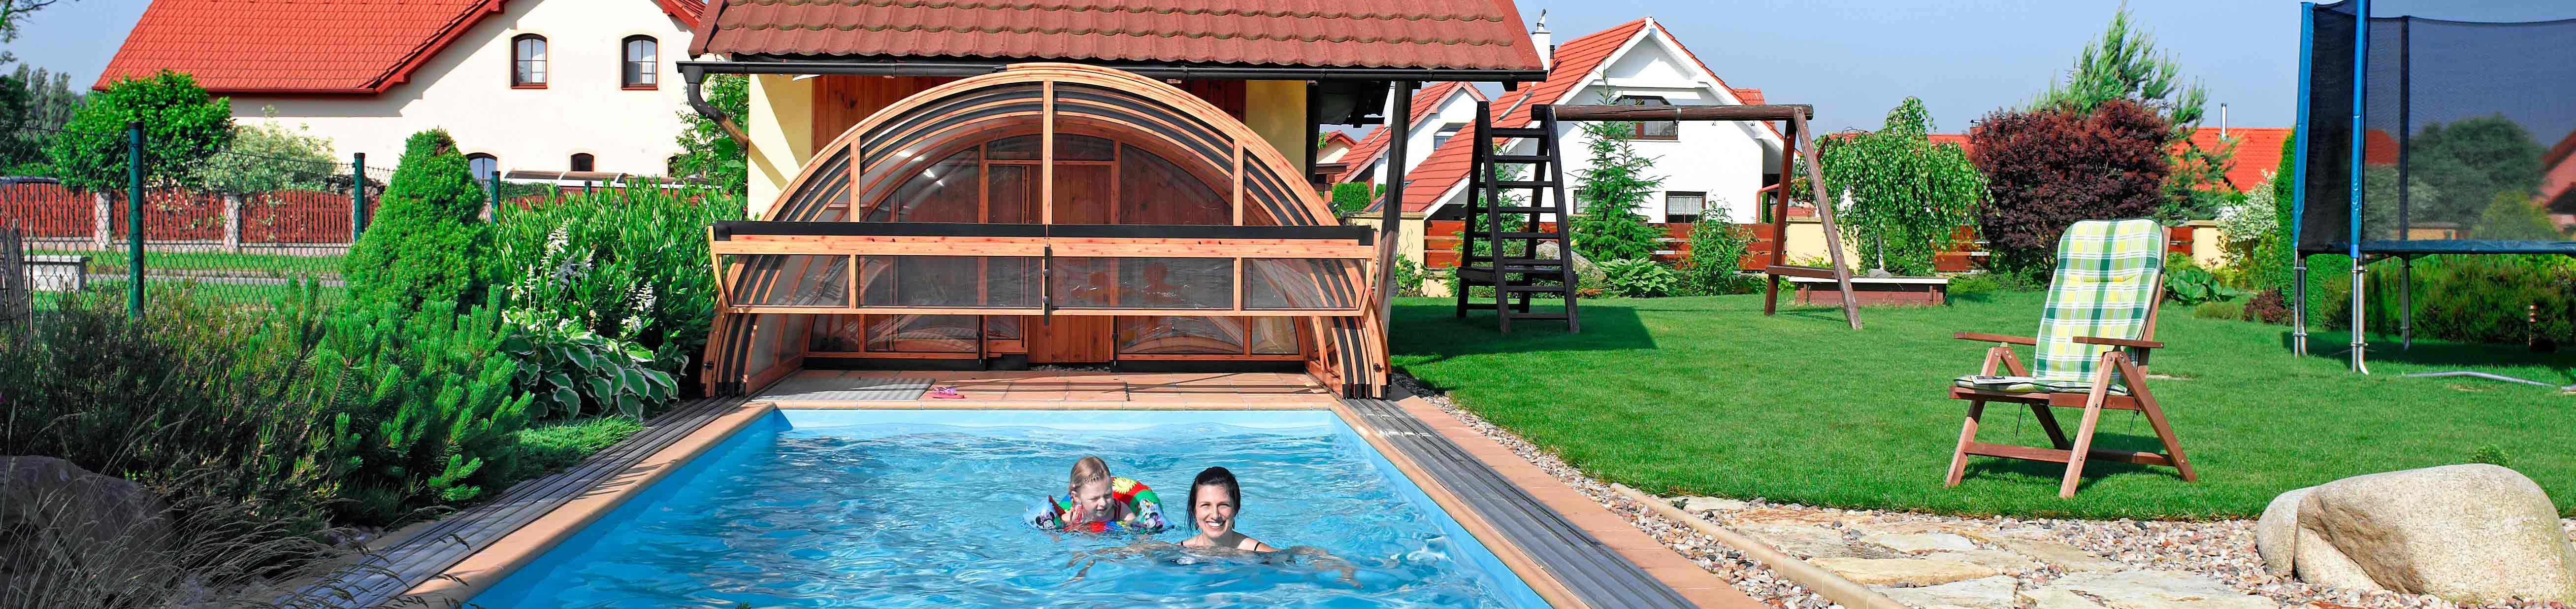 Retractable swimming pool enclosure universe sunrooms Retractable swimming pool enclosures